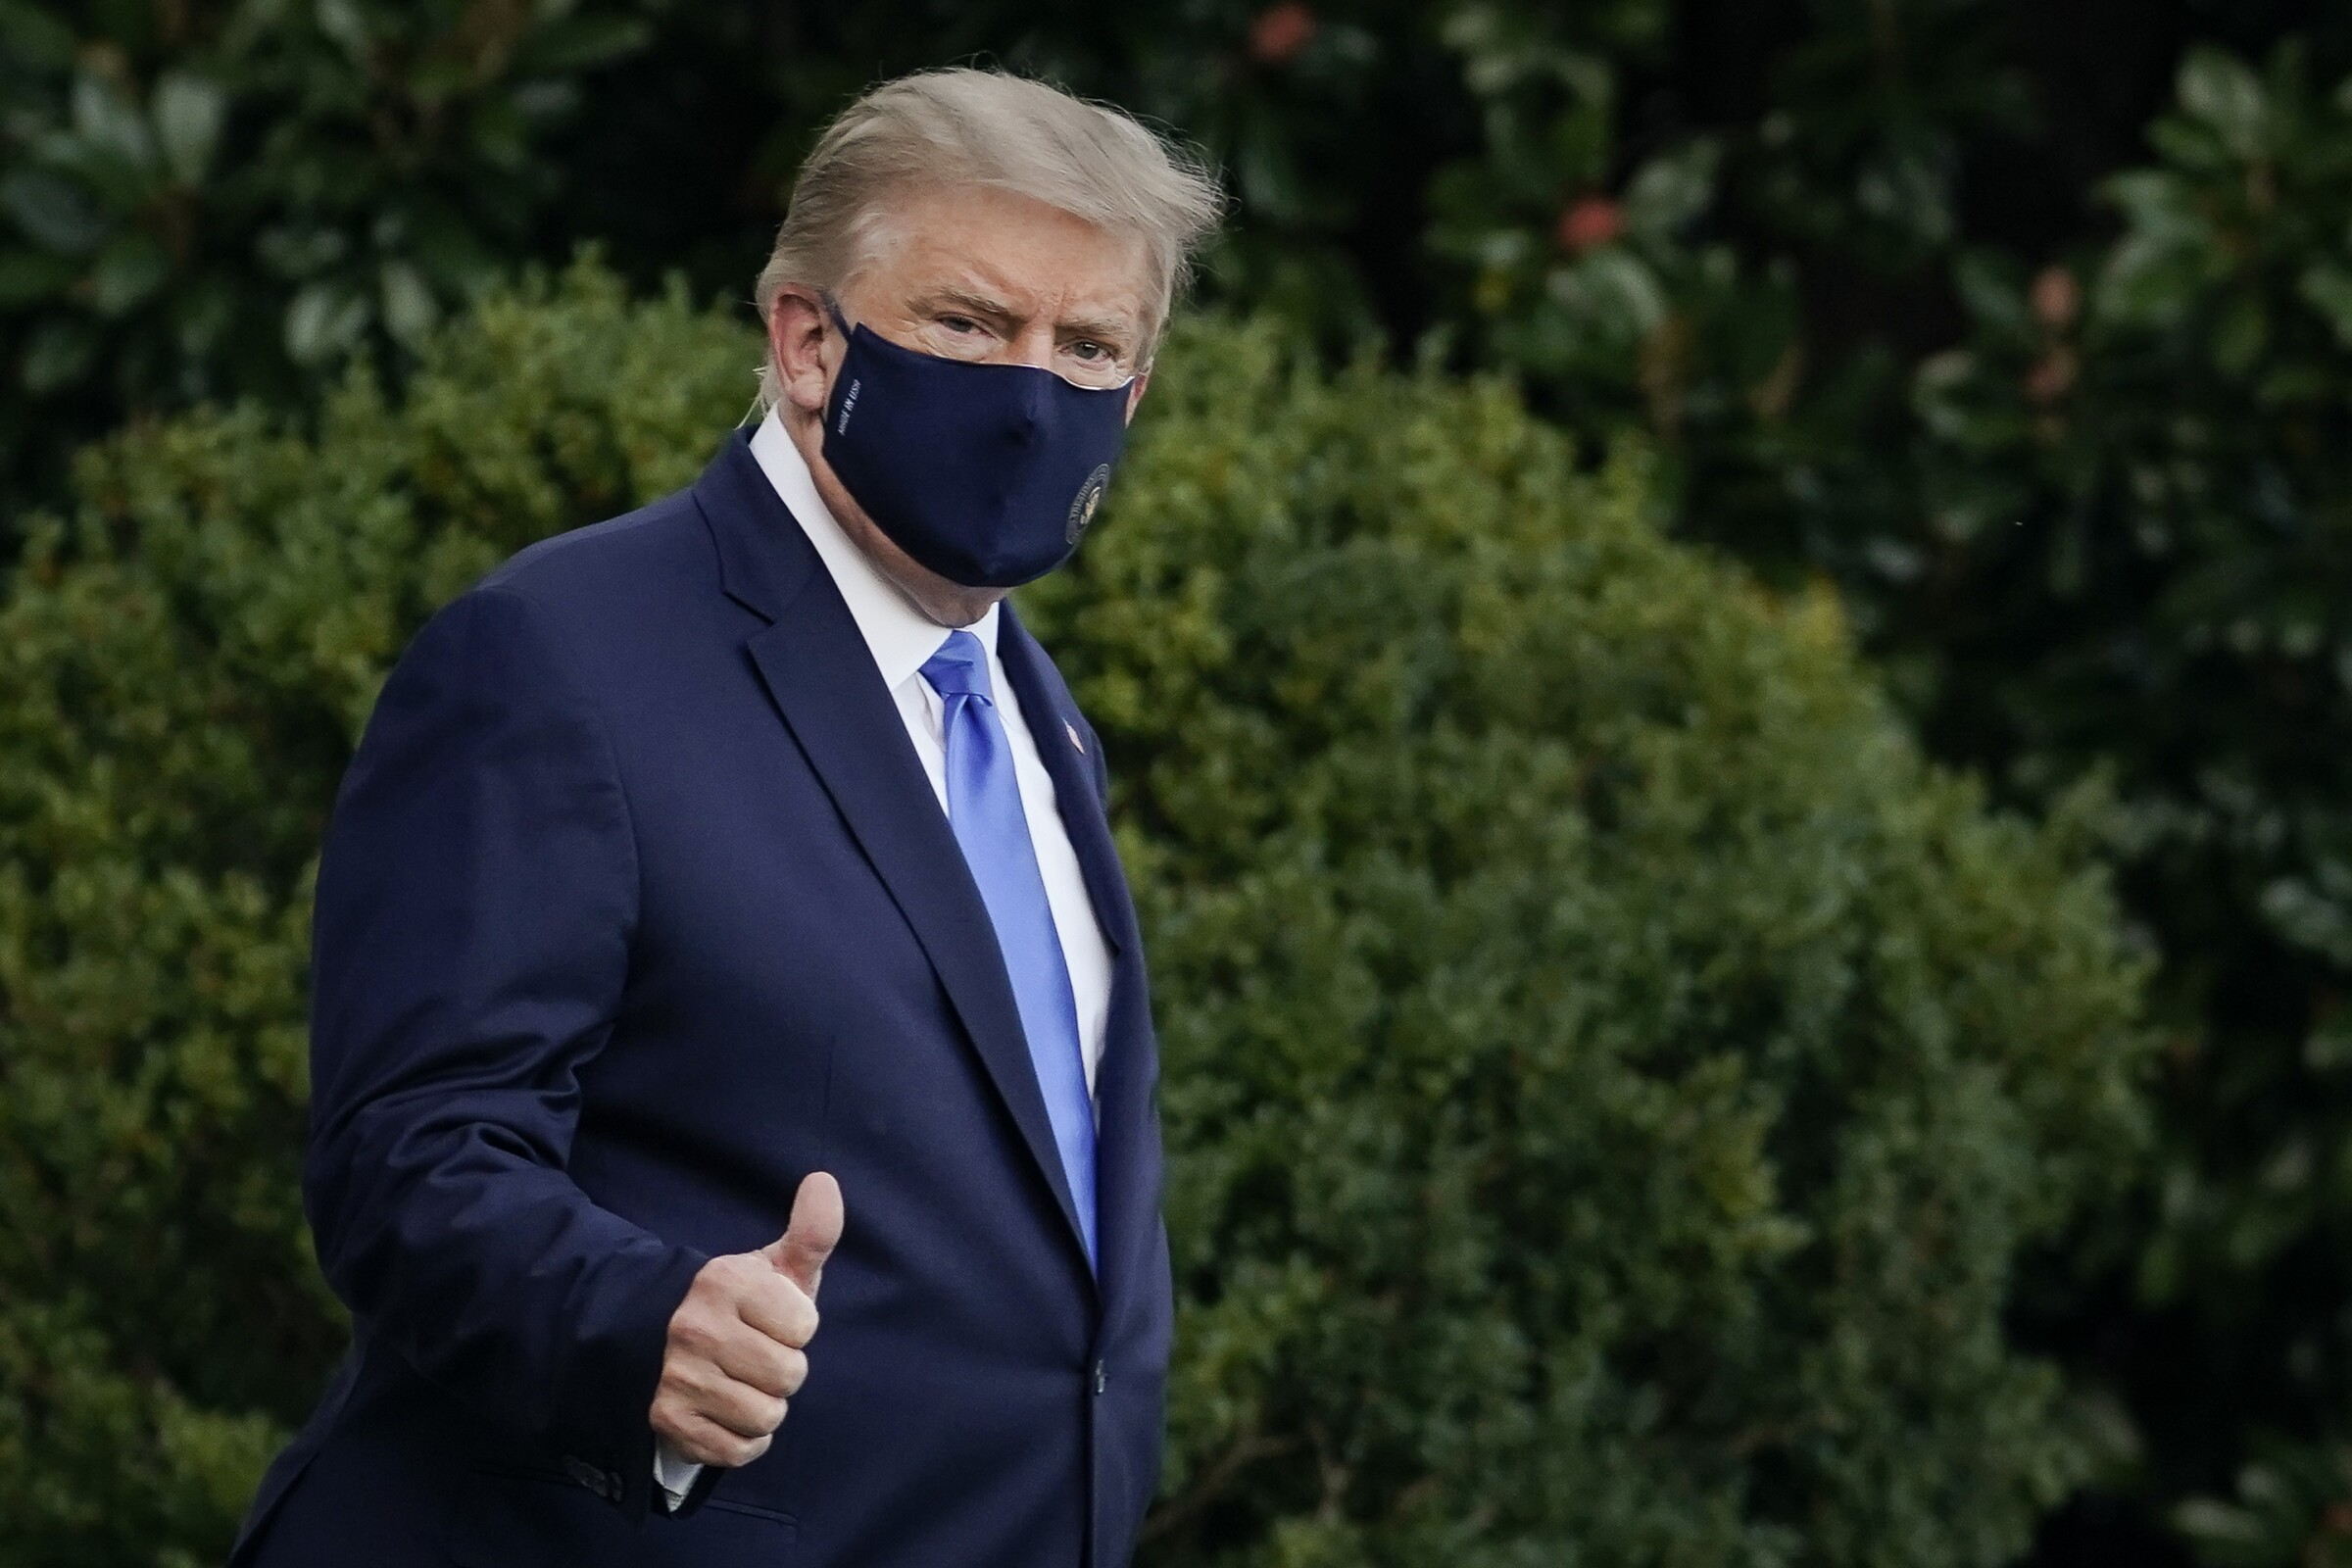 President Trump wearing a mask and flashing a thumbs-up